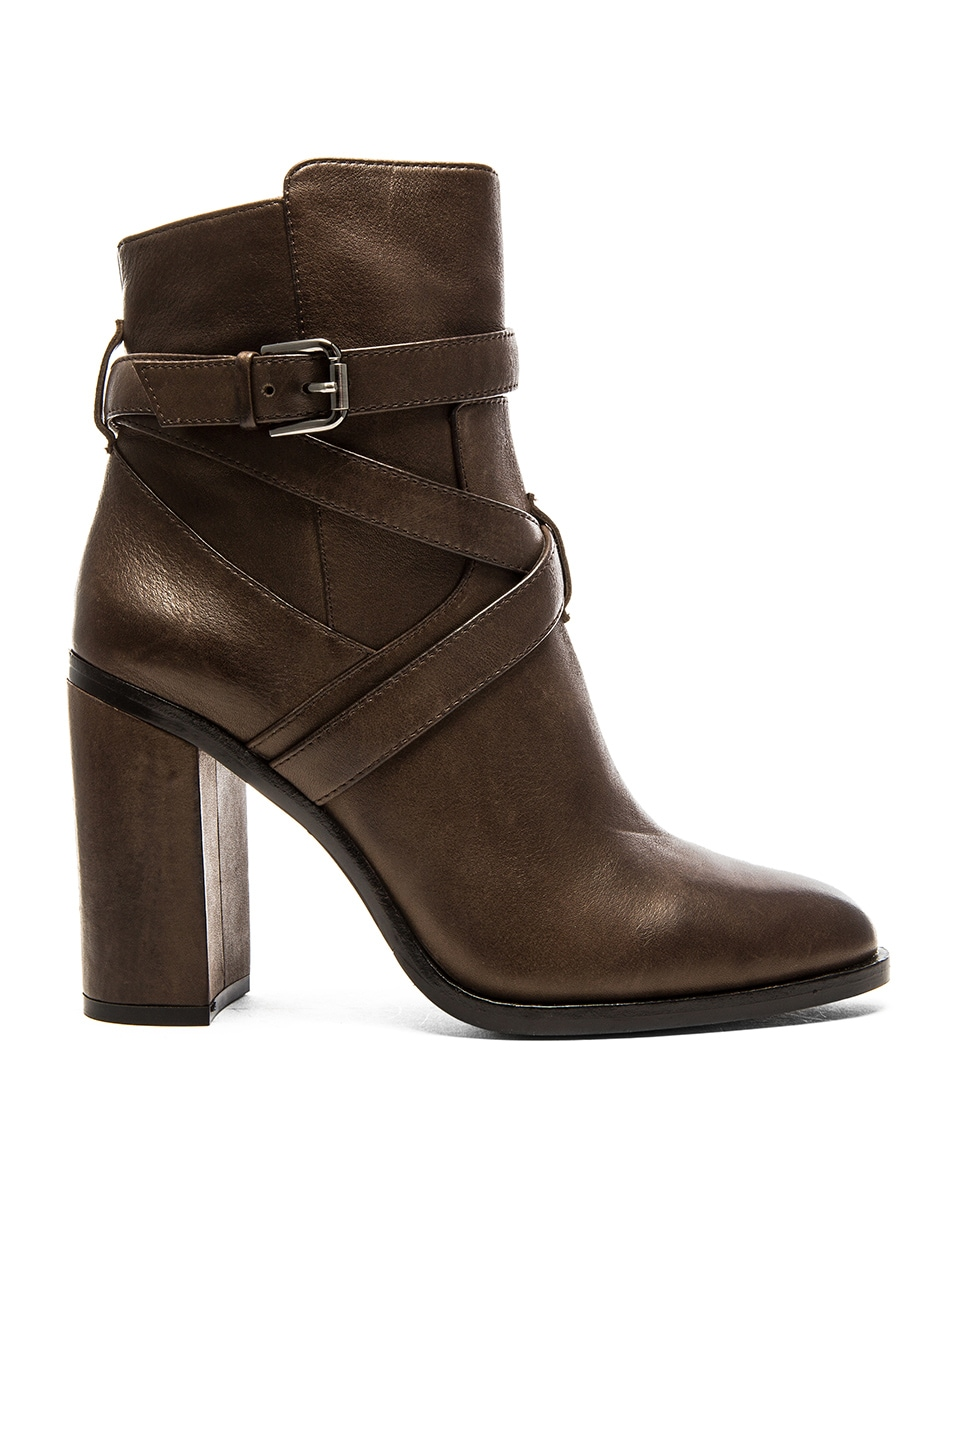 Vince Camuto Garvell Bootie in Khaki Grey